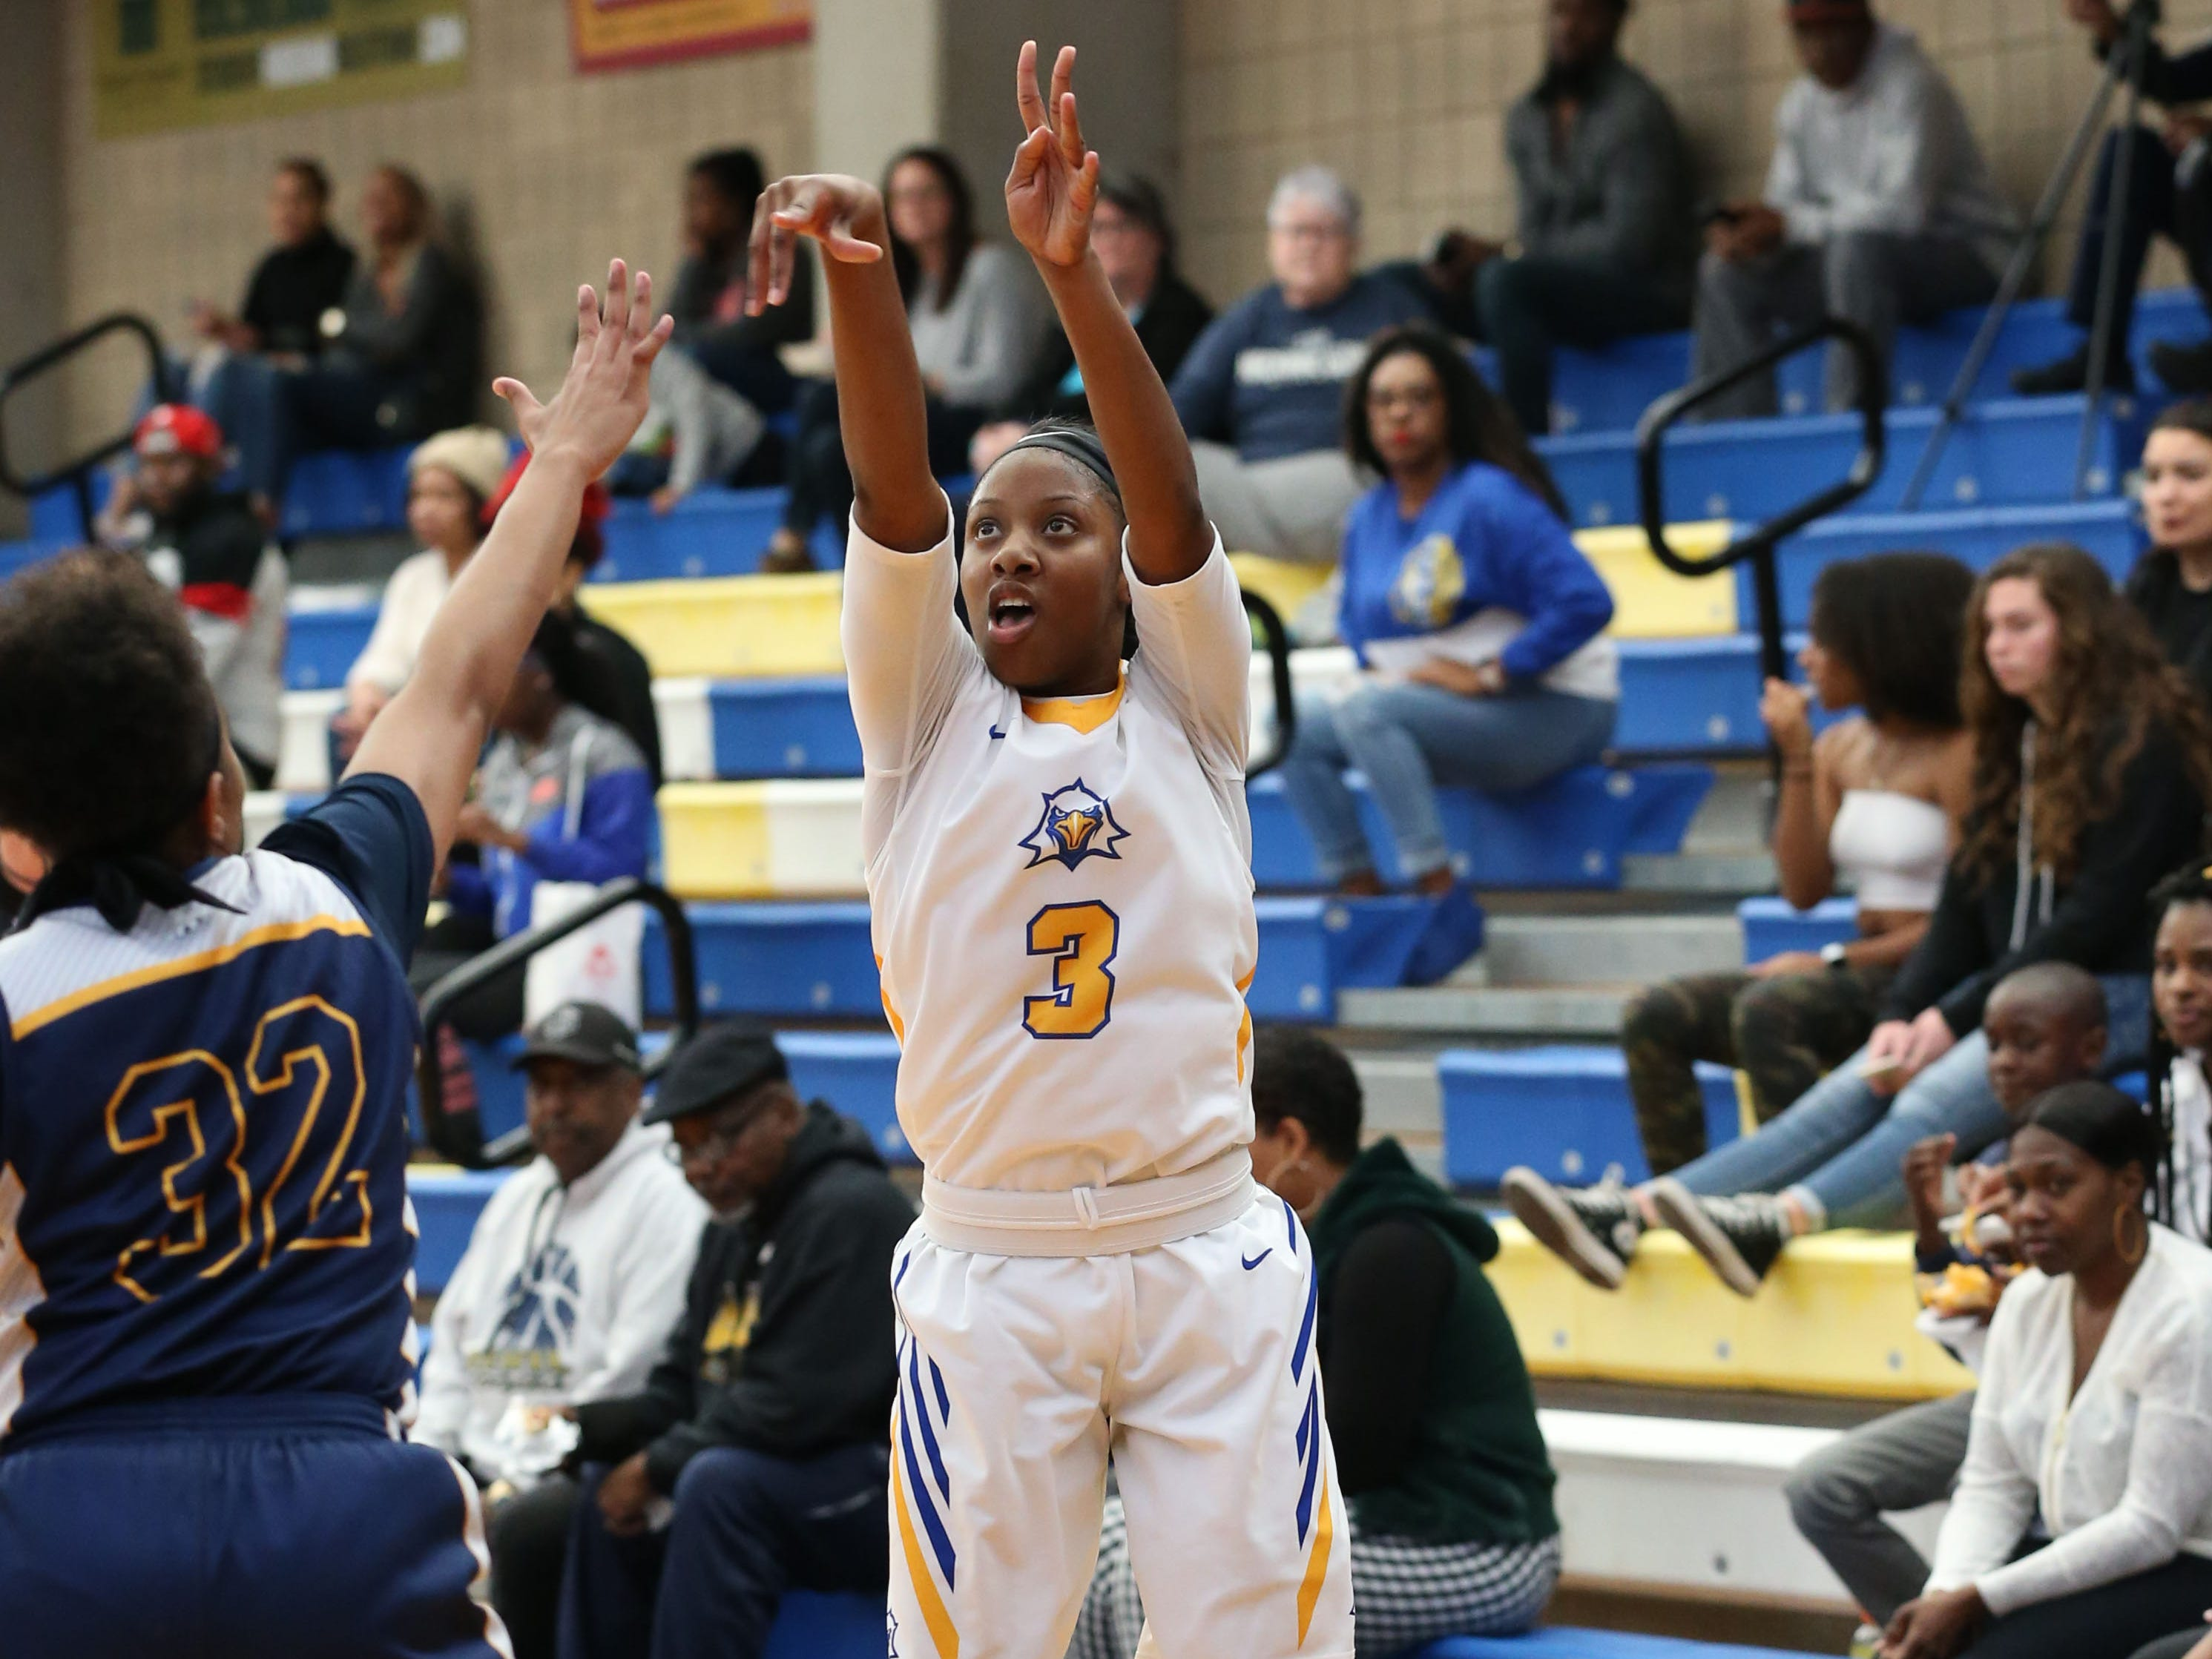 Tallahassee Community College Eagles guard Aliyah Lawson (3) shoots for three. The Tallahassee Community College Eagles host the Gulf Coast State College Commodores in a conference match-up in the Eagledome, Saturday, Jan. 5, 2019.